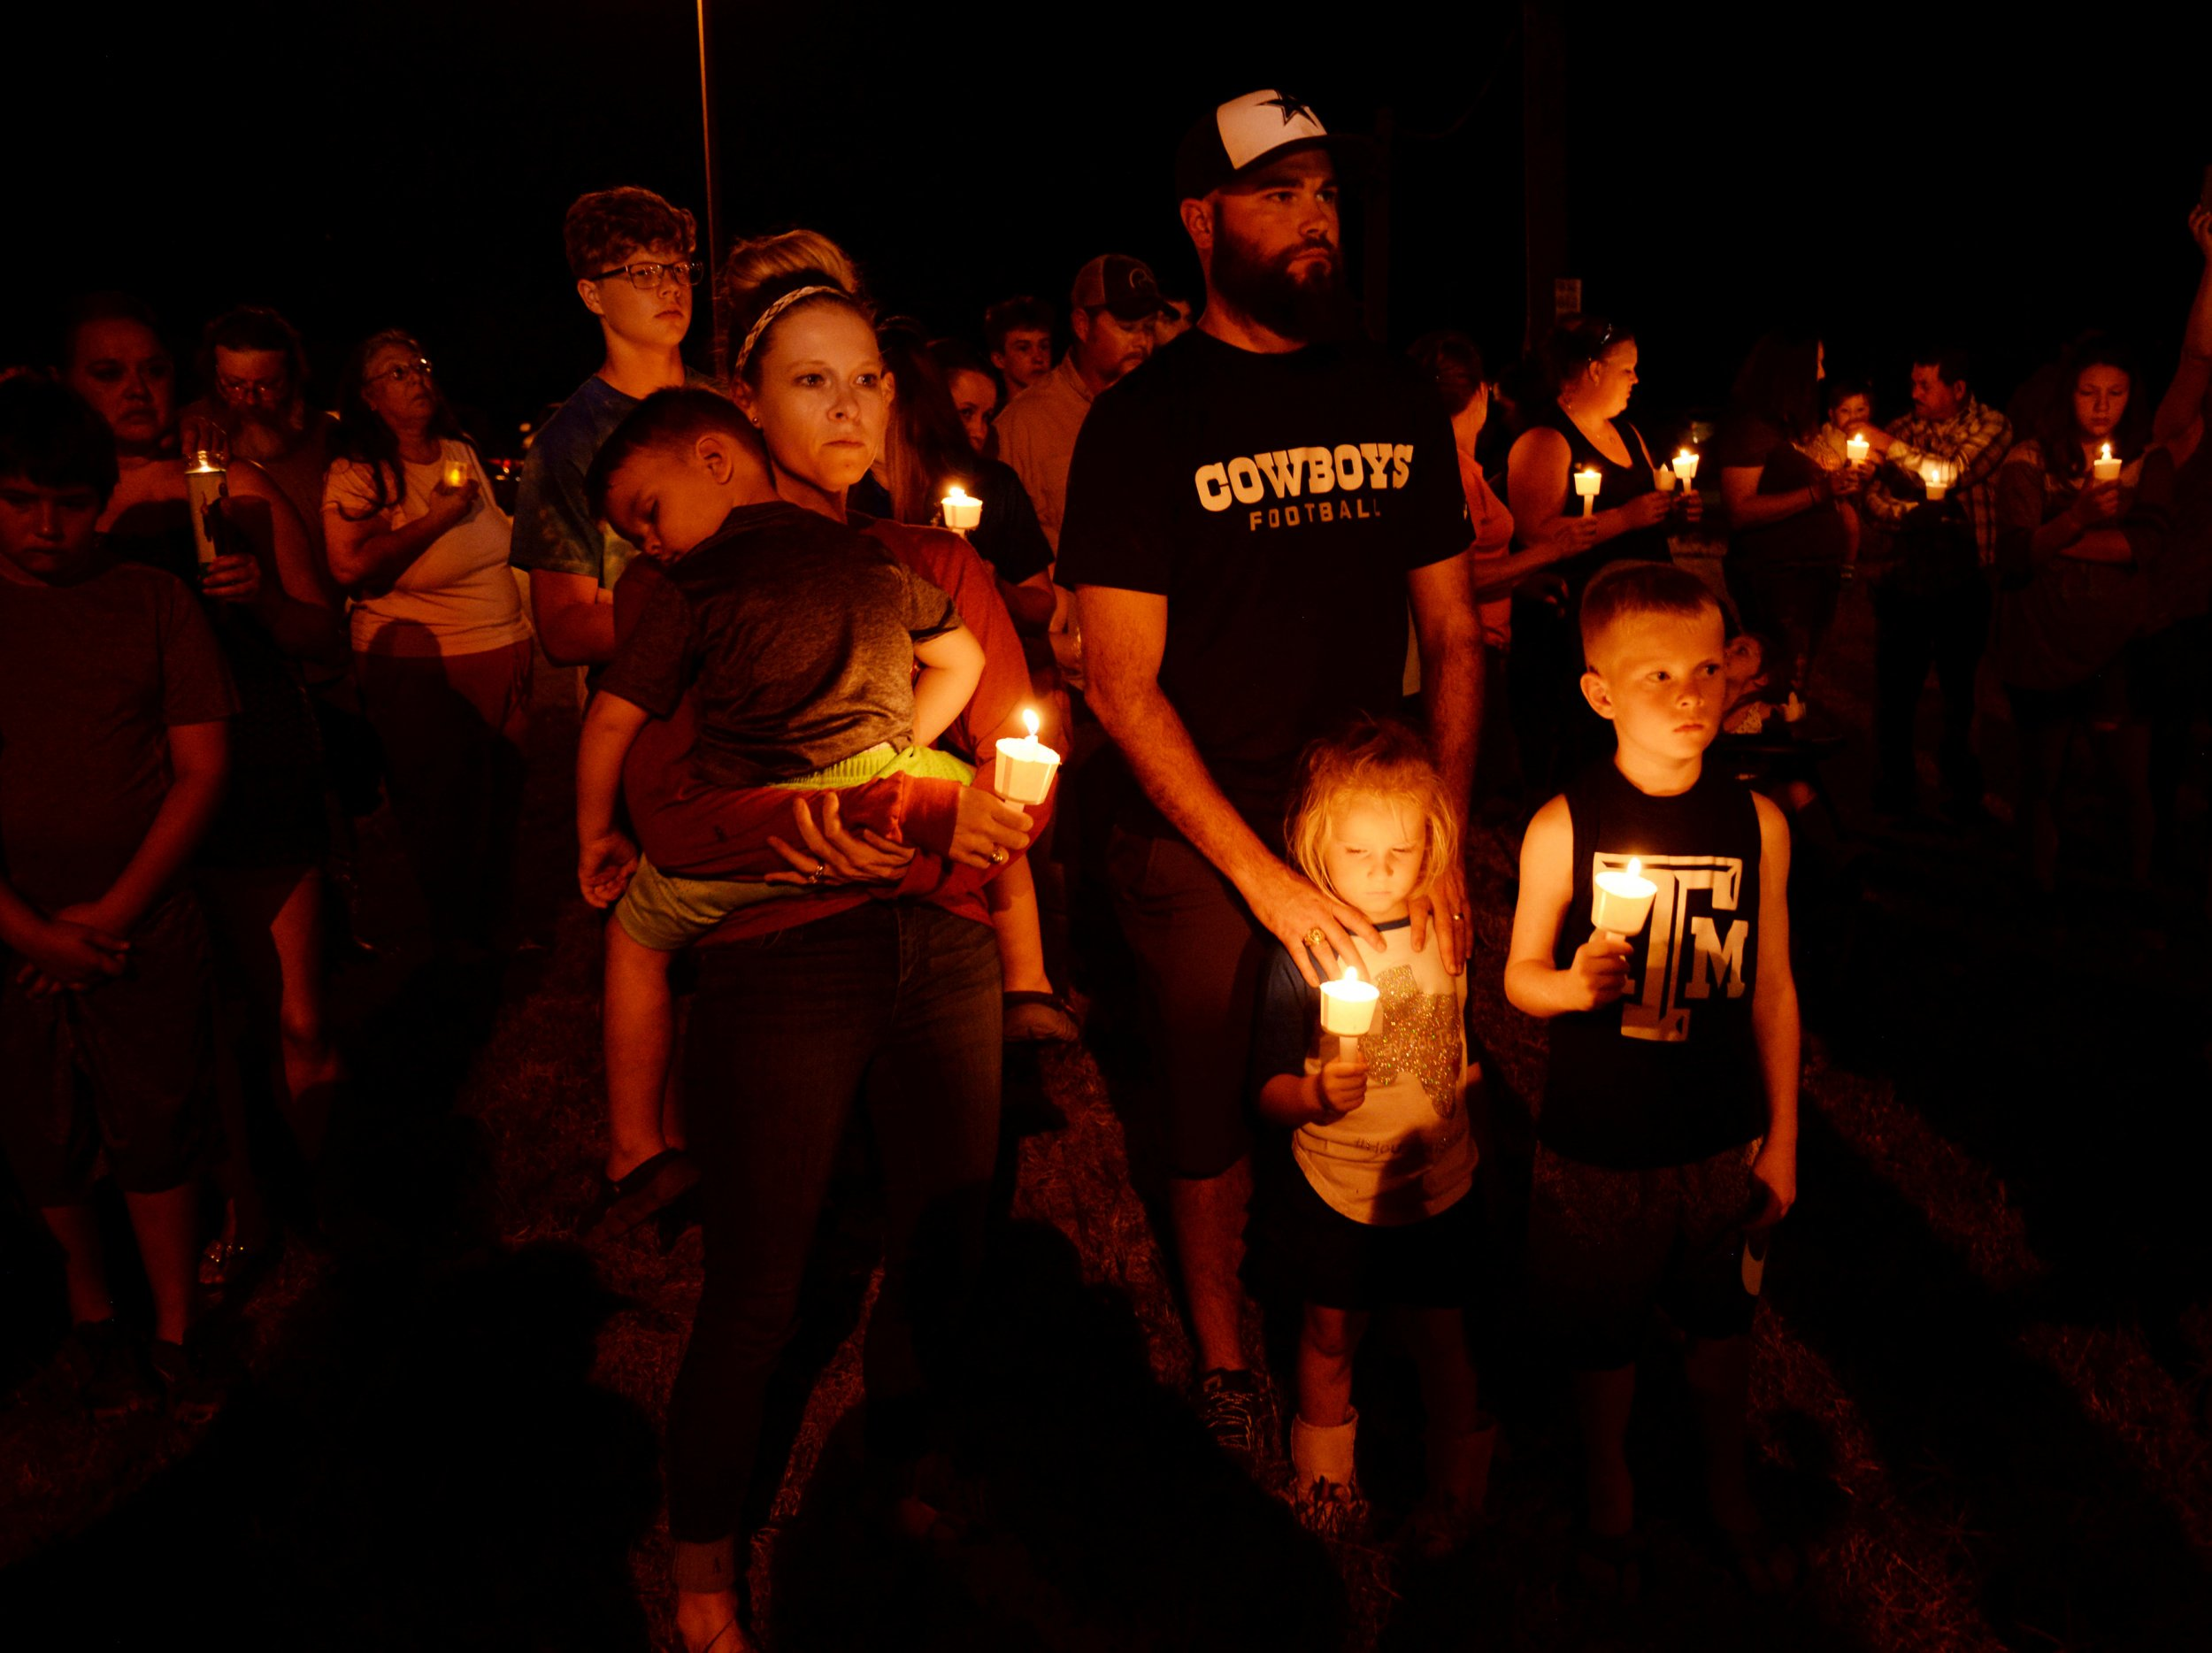 I was in the military and support gun rights, but semi-automatic weapons should be banned | Opinion